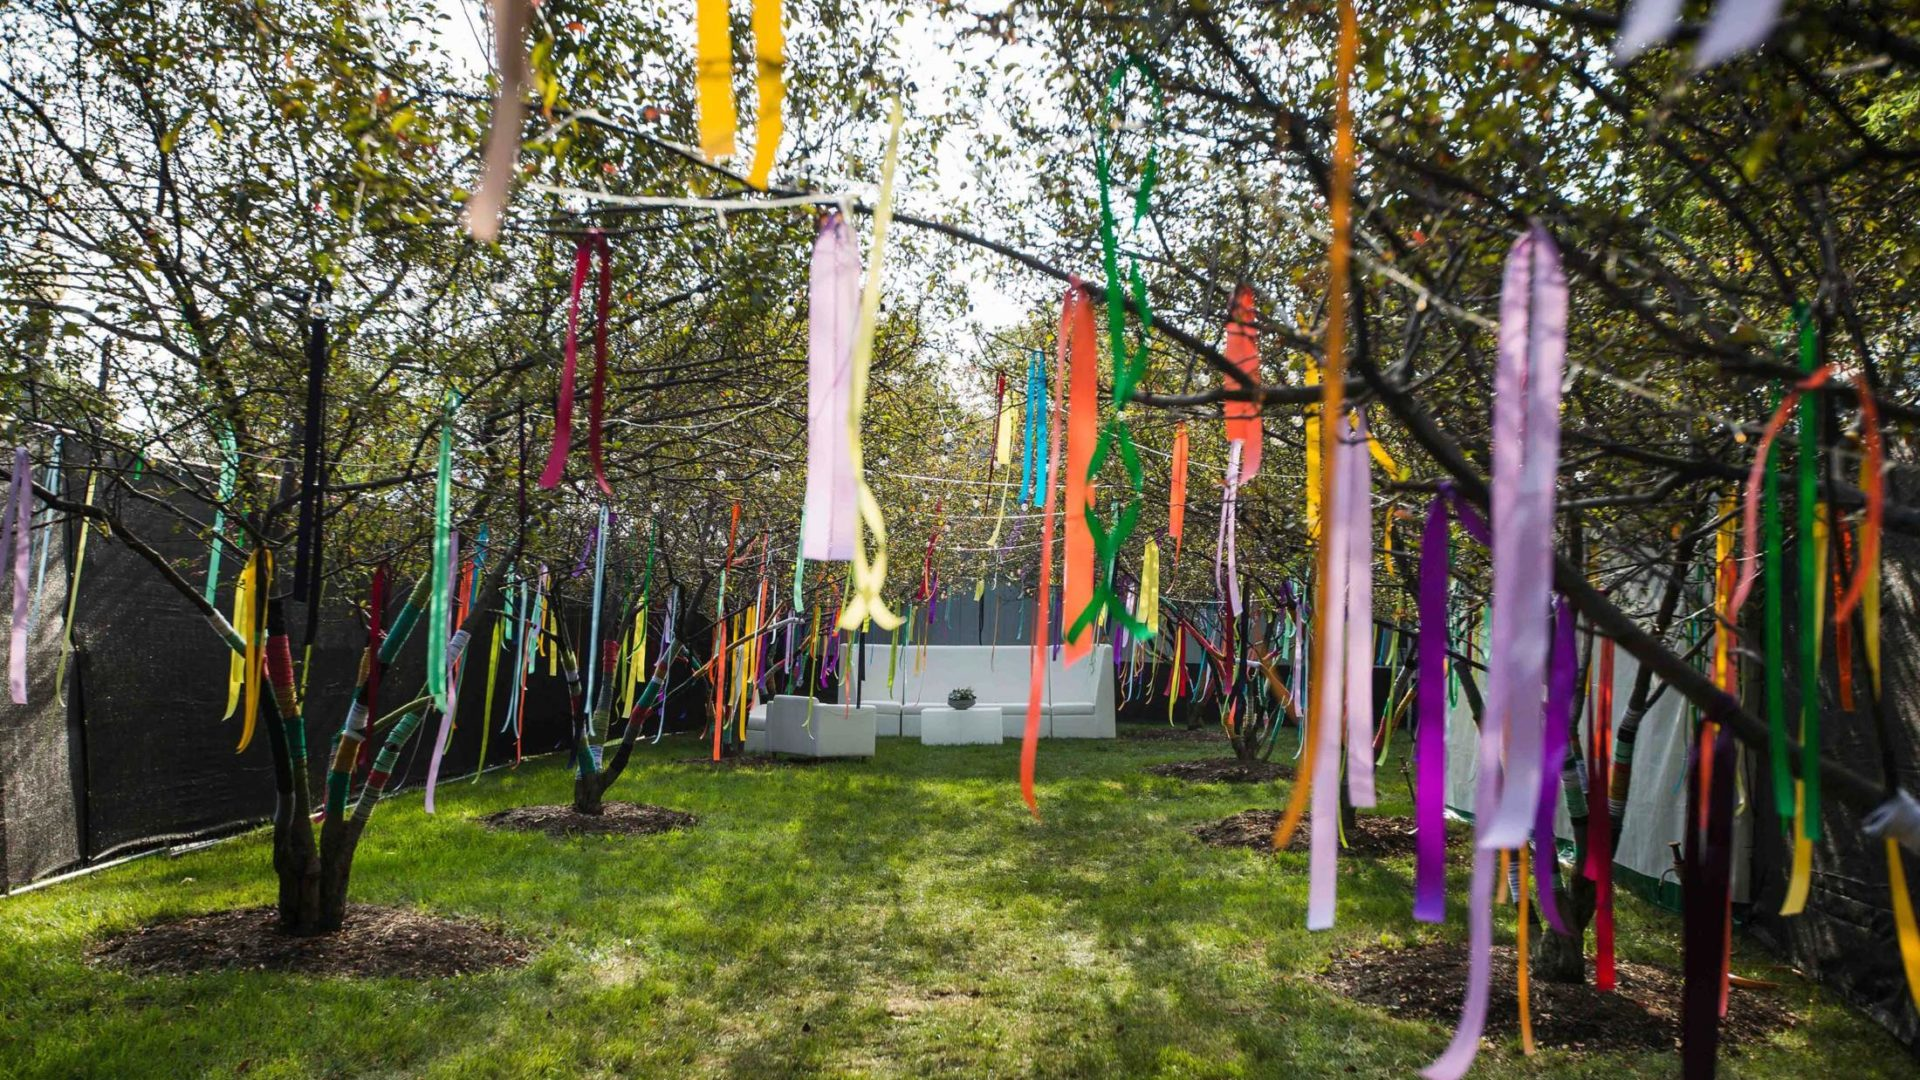 Trees with colorful ribbons hanging from branches